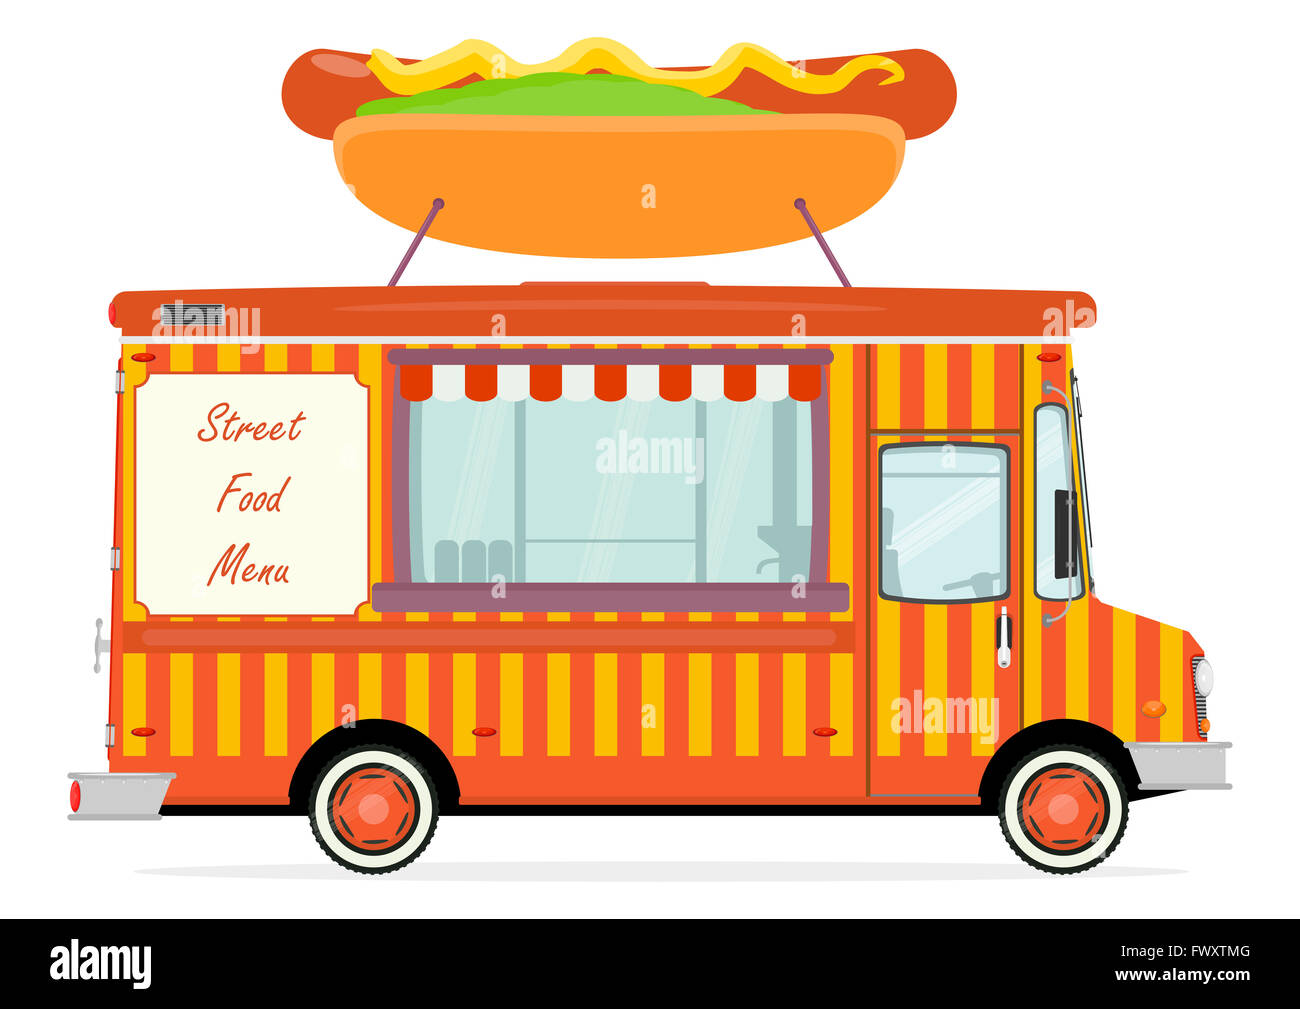 Cartoon Street Food Truck On A White Background